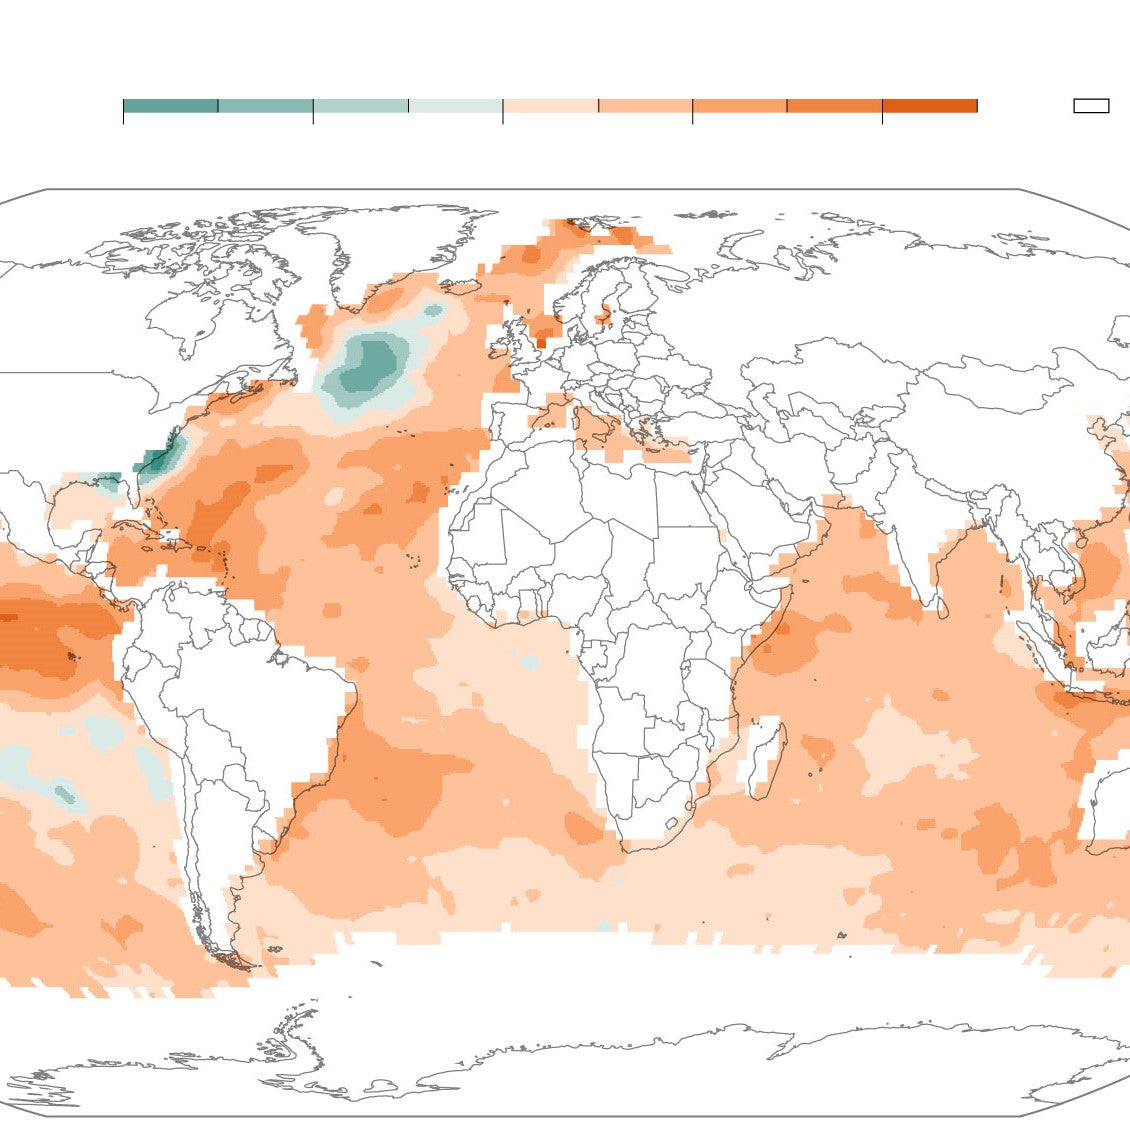 Ocean Heat Waves Are Threatening Marine Life